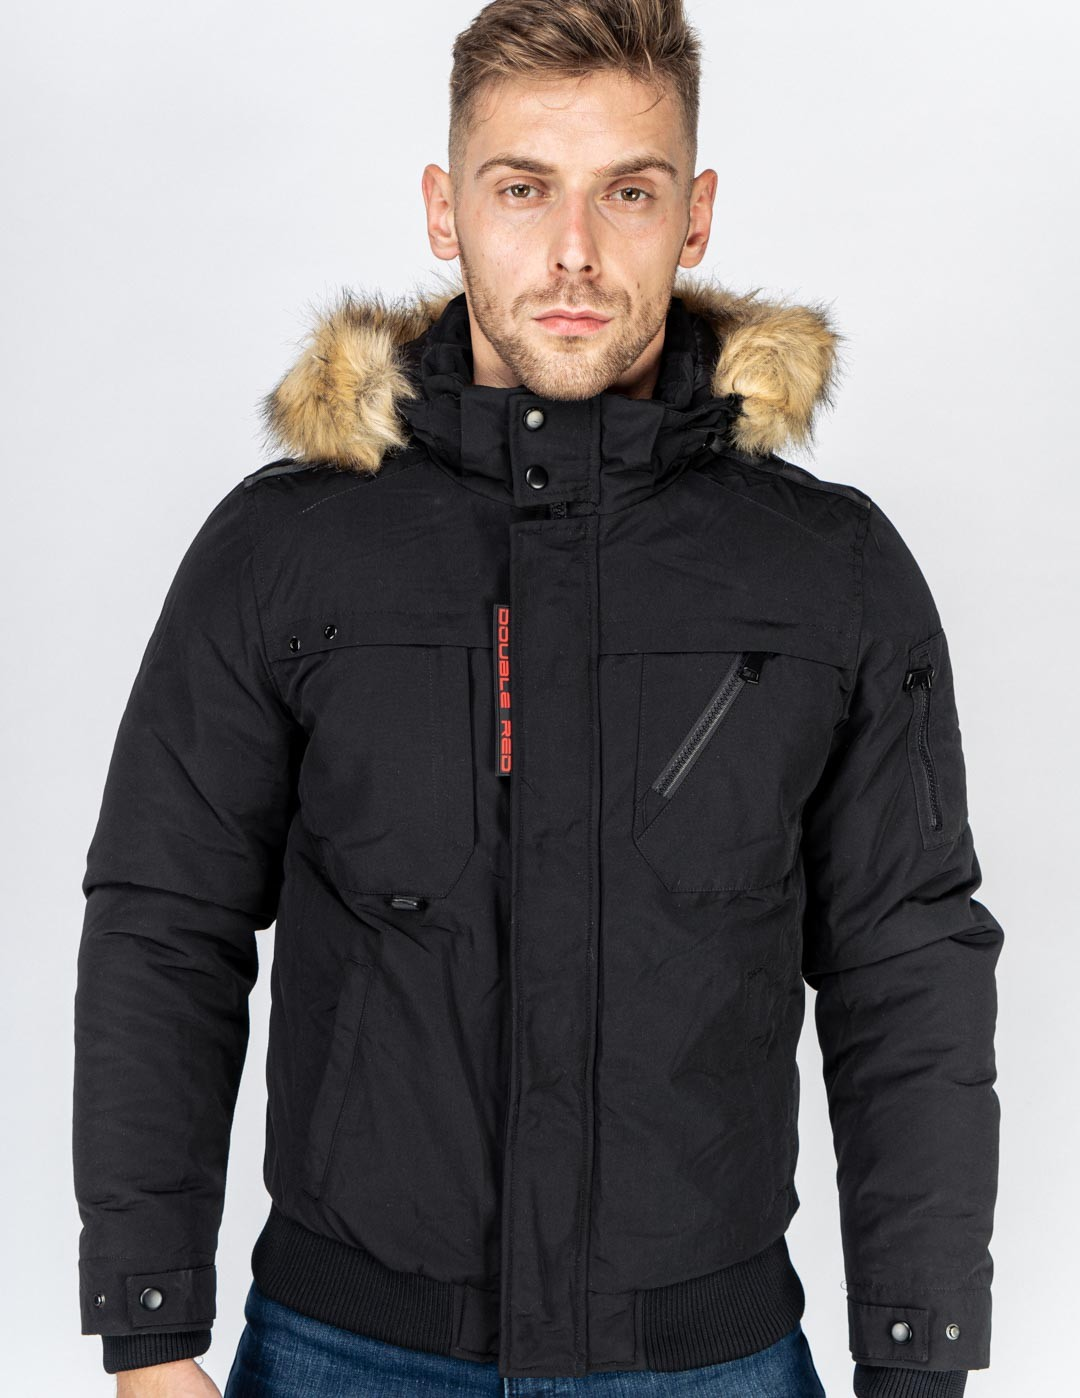 AERO Winter Jacket Black